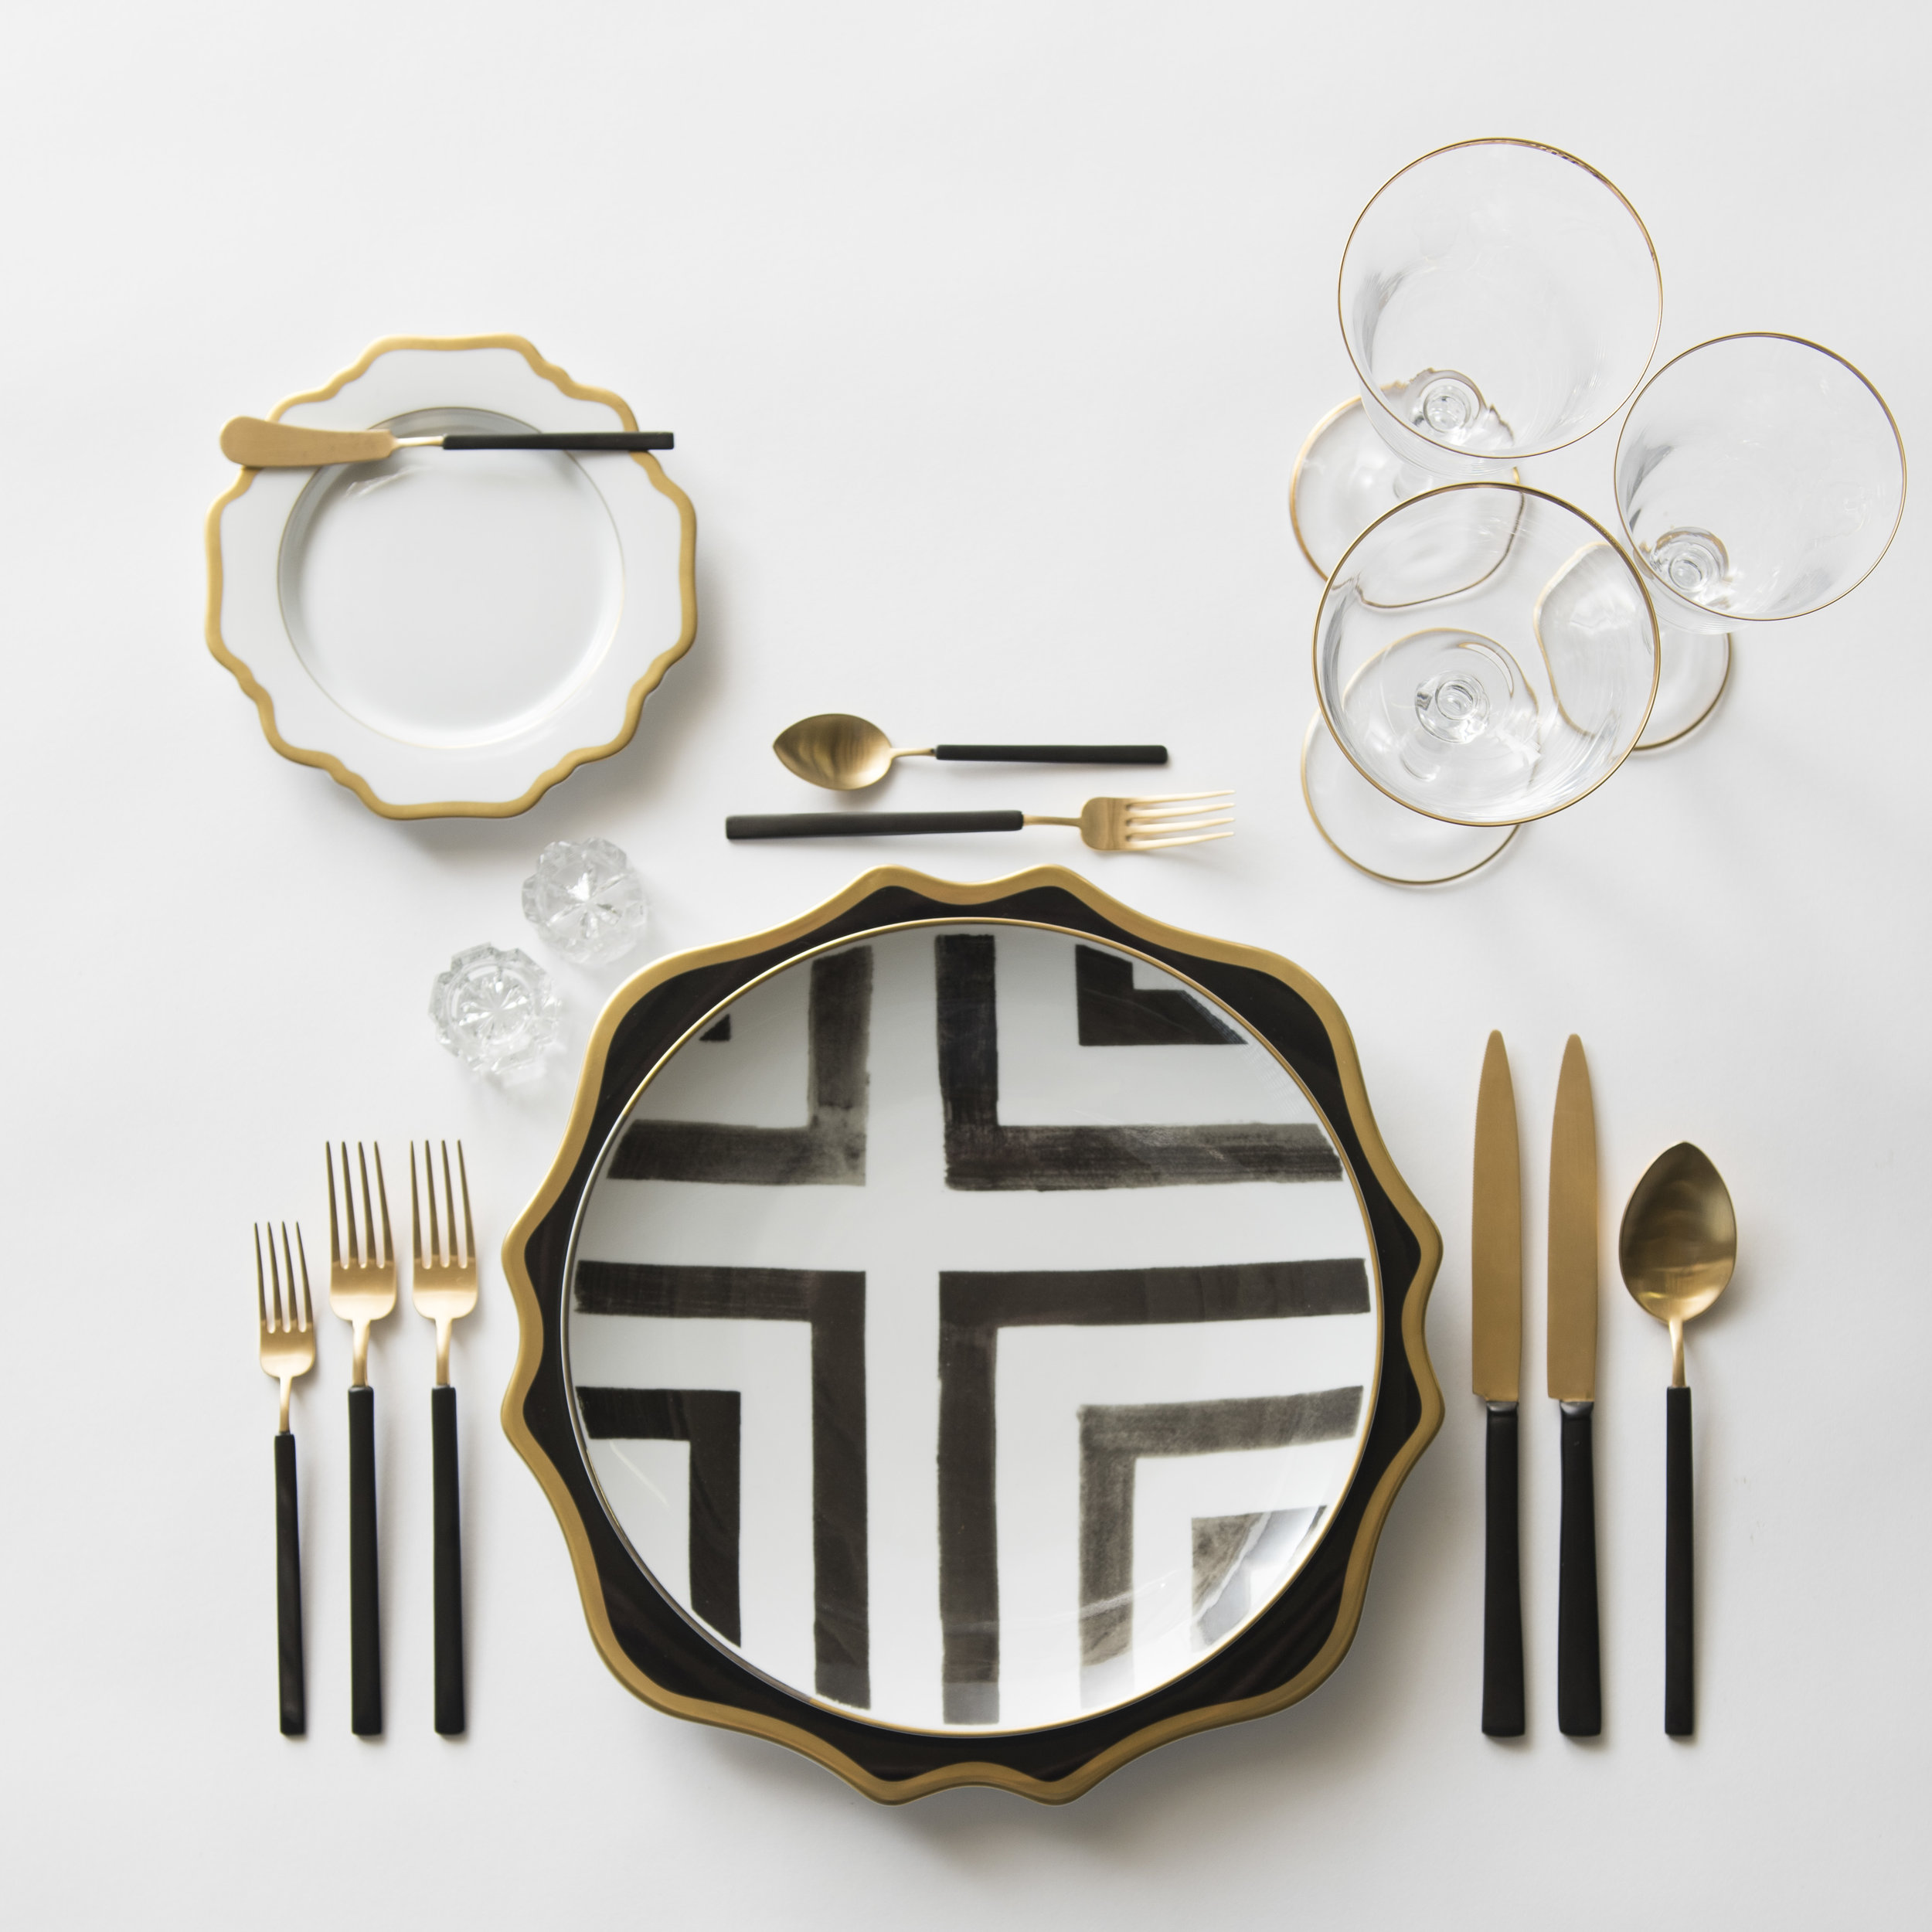 RENT: Anna Weatherley Chargers in Black/Gold + Anna Weatherley Dinnerware in White/Gold + Christian Lacroix Sol Y Sombra Dinnerware + Axel Flatware in Matte 24k Gold/Black + Chloe 24k Gold Rimmed Stemware + Antique Crystal Salt Cellars  SHOP: Anna Weatherley Dinnerware in White/Gold + Christian Lacroix Sol Y Sombra Dinnerware + Chloe 24k Gold Rimmed